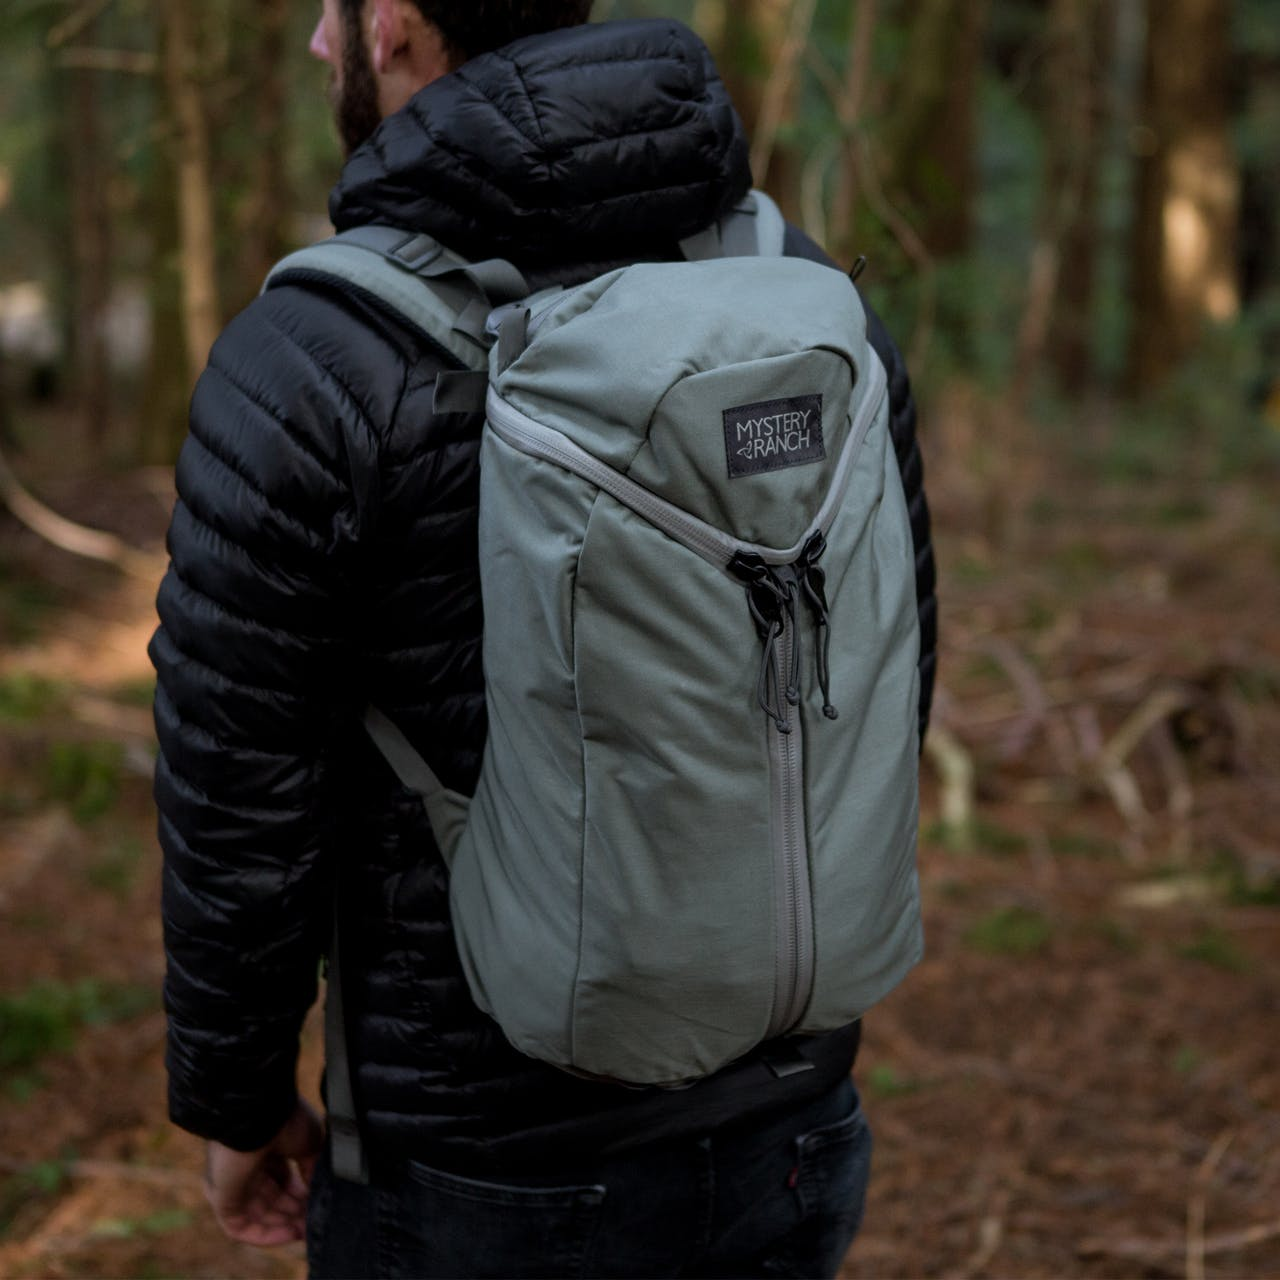 You Can Save 28% on Mystery Ranch's Commuter Pack Today 3